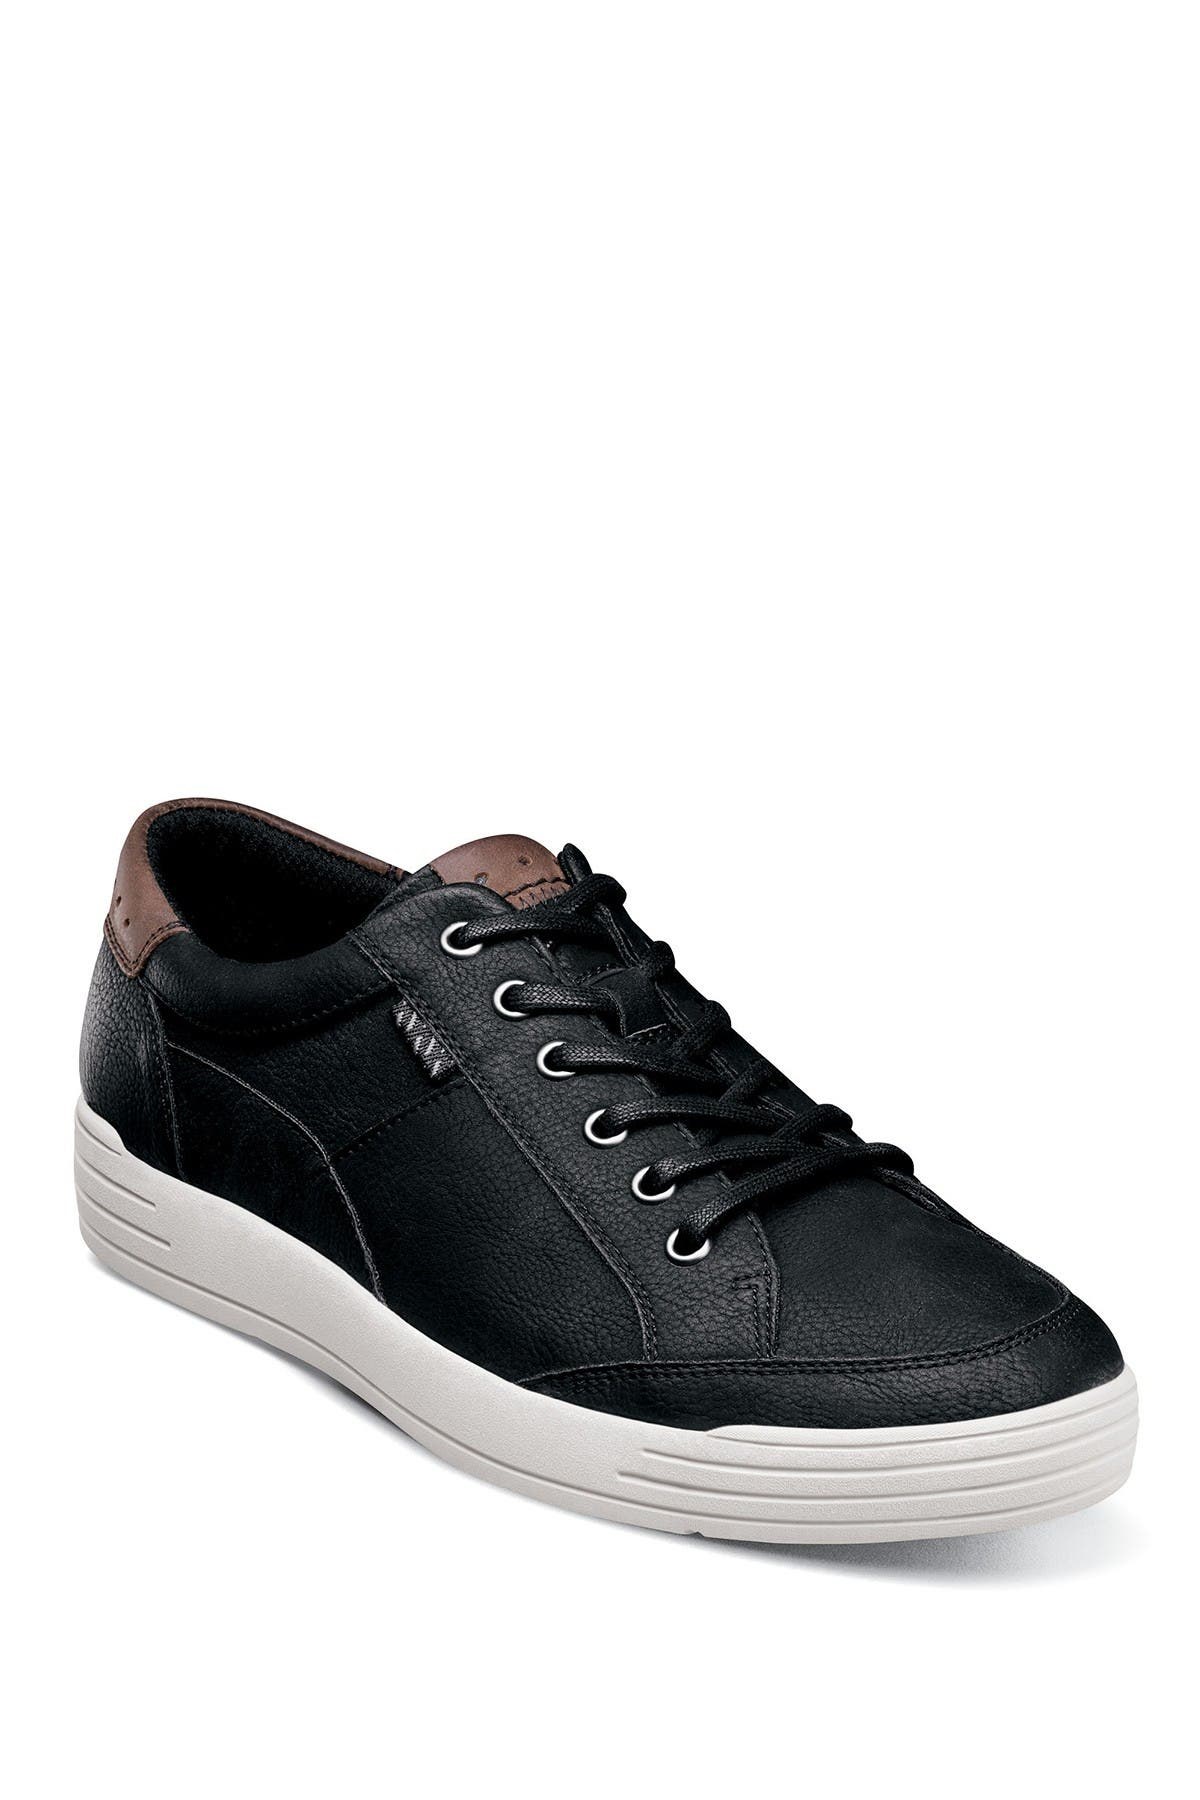 Image of NUNN BUSH Kore City Walk Lace-Up Sneaker